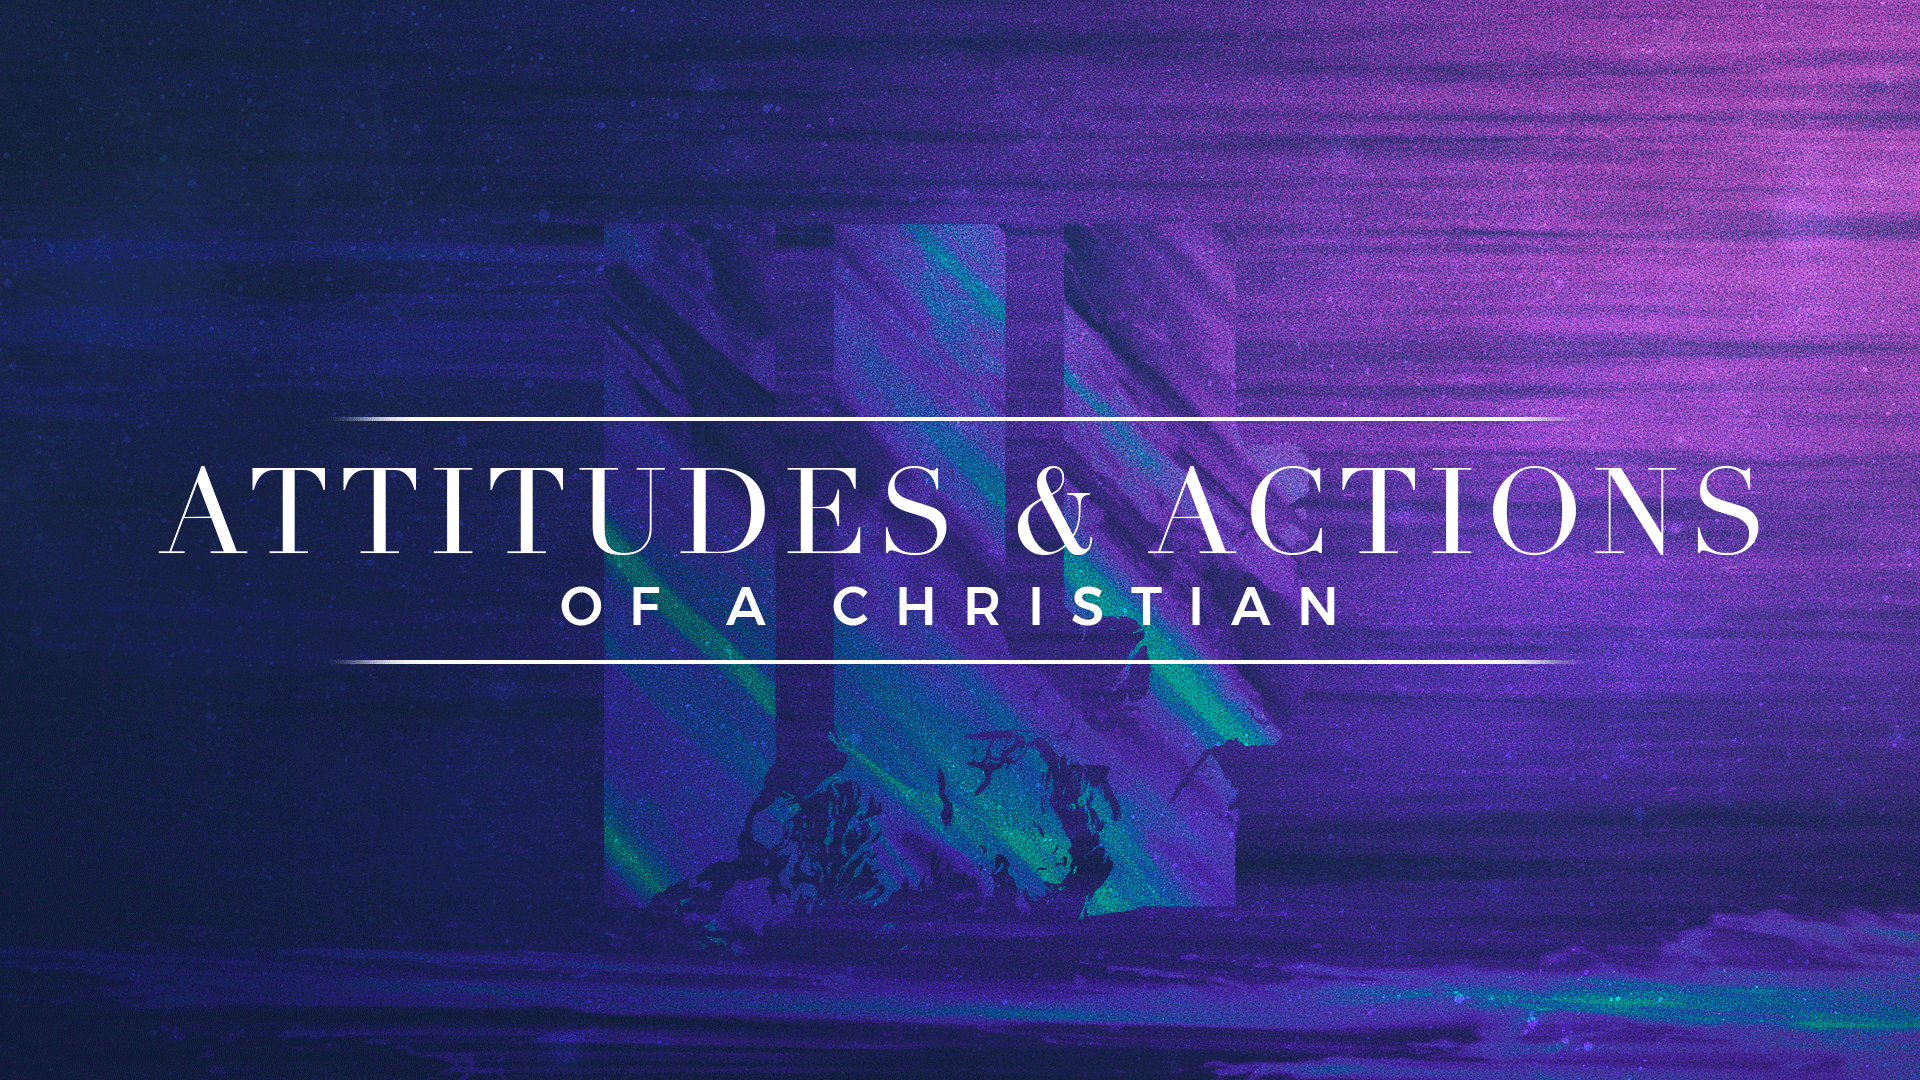 Attitudes and Actions of a Christian